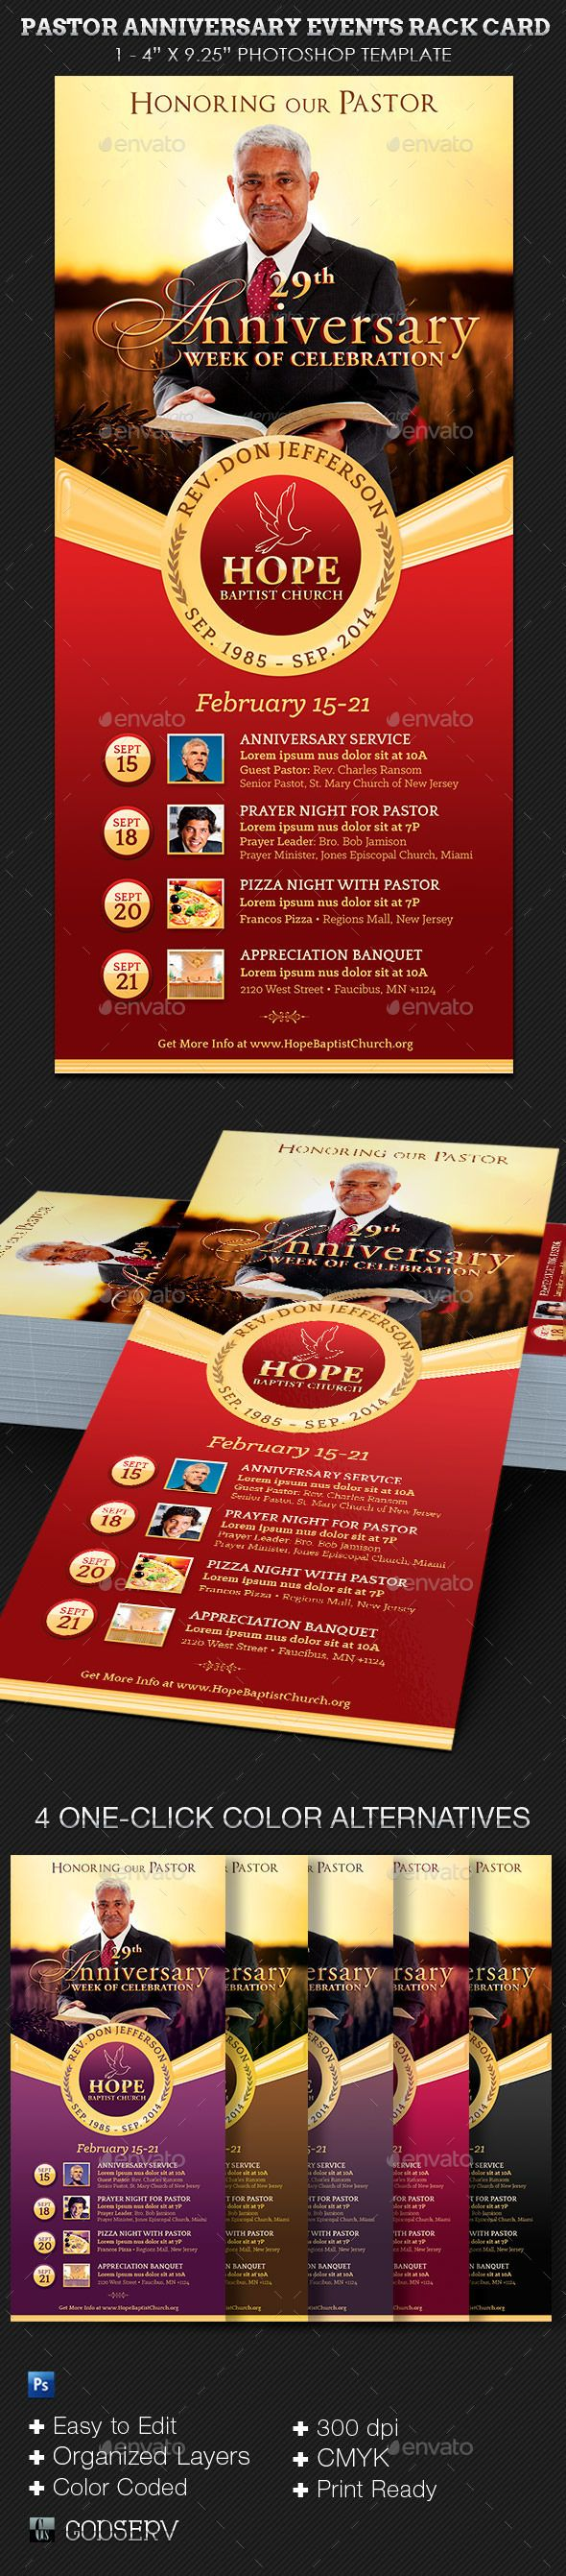 Pastor Anniversary Events Rack Card Template With Images Rack Card Templates Pastor Anniversary Card Template